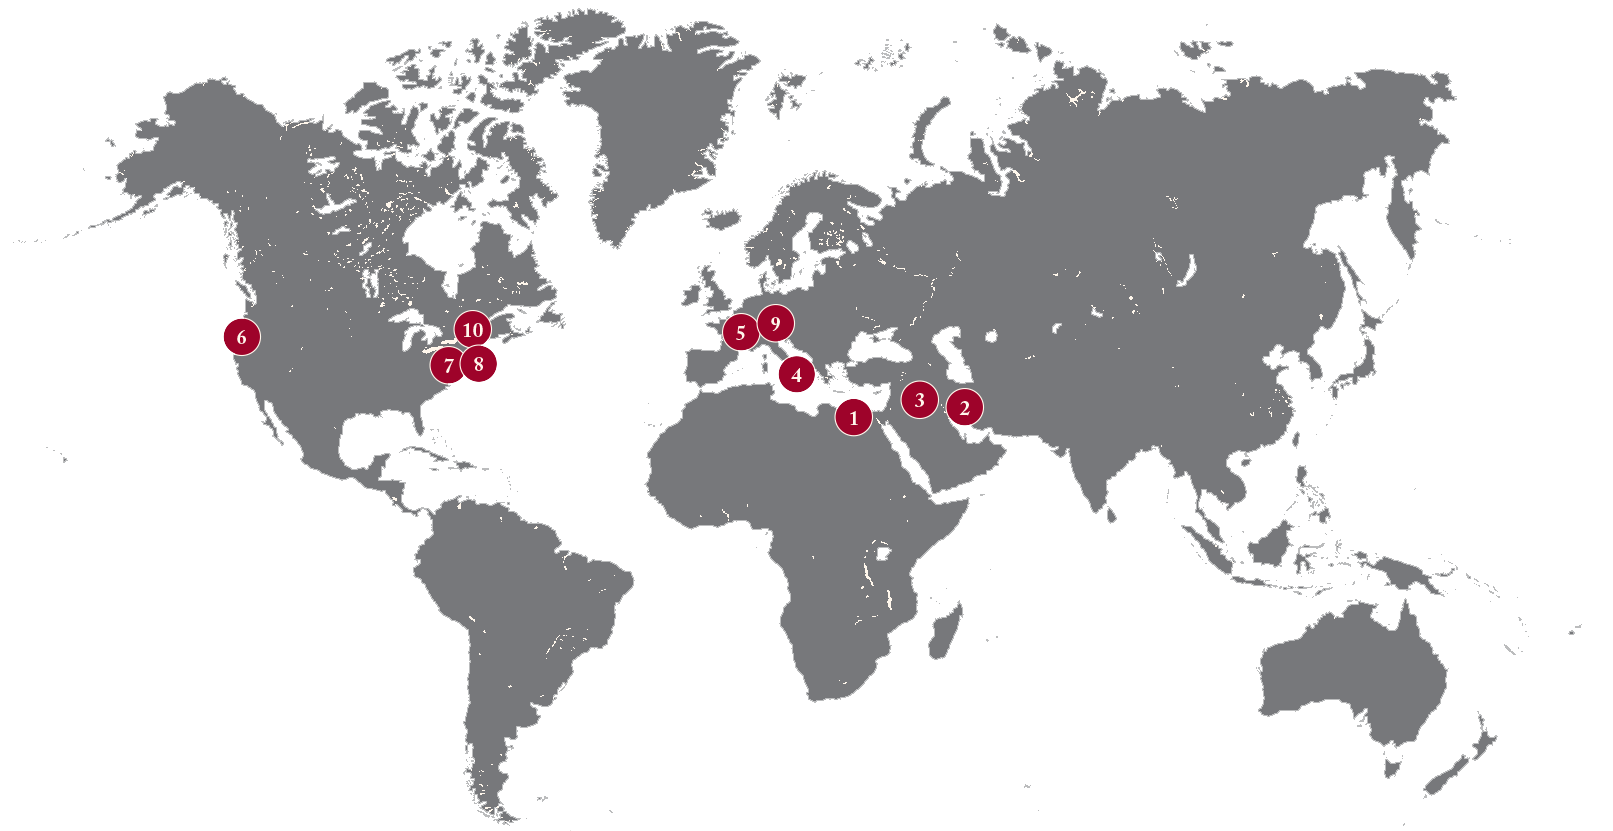 World map with numbers indicating the locations of the events described below